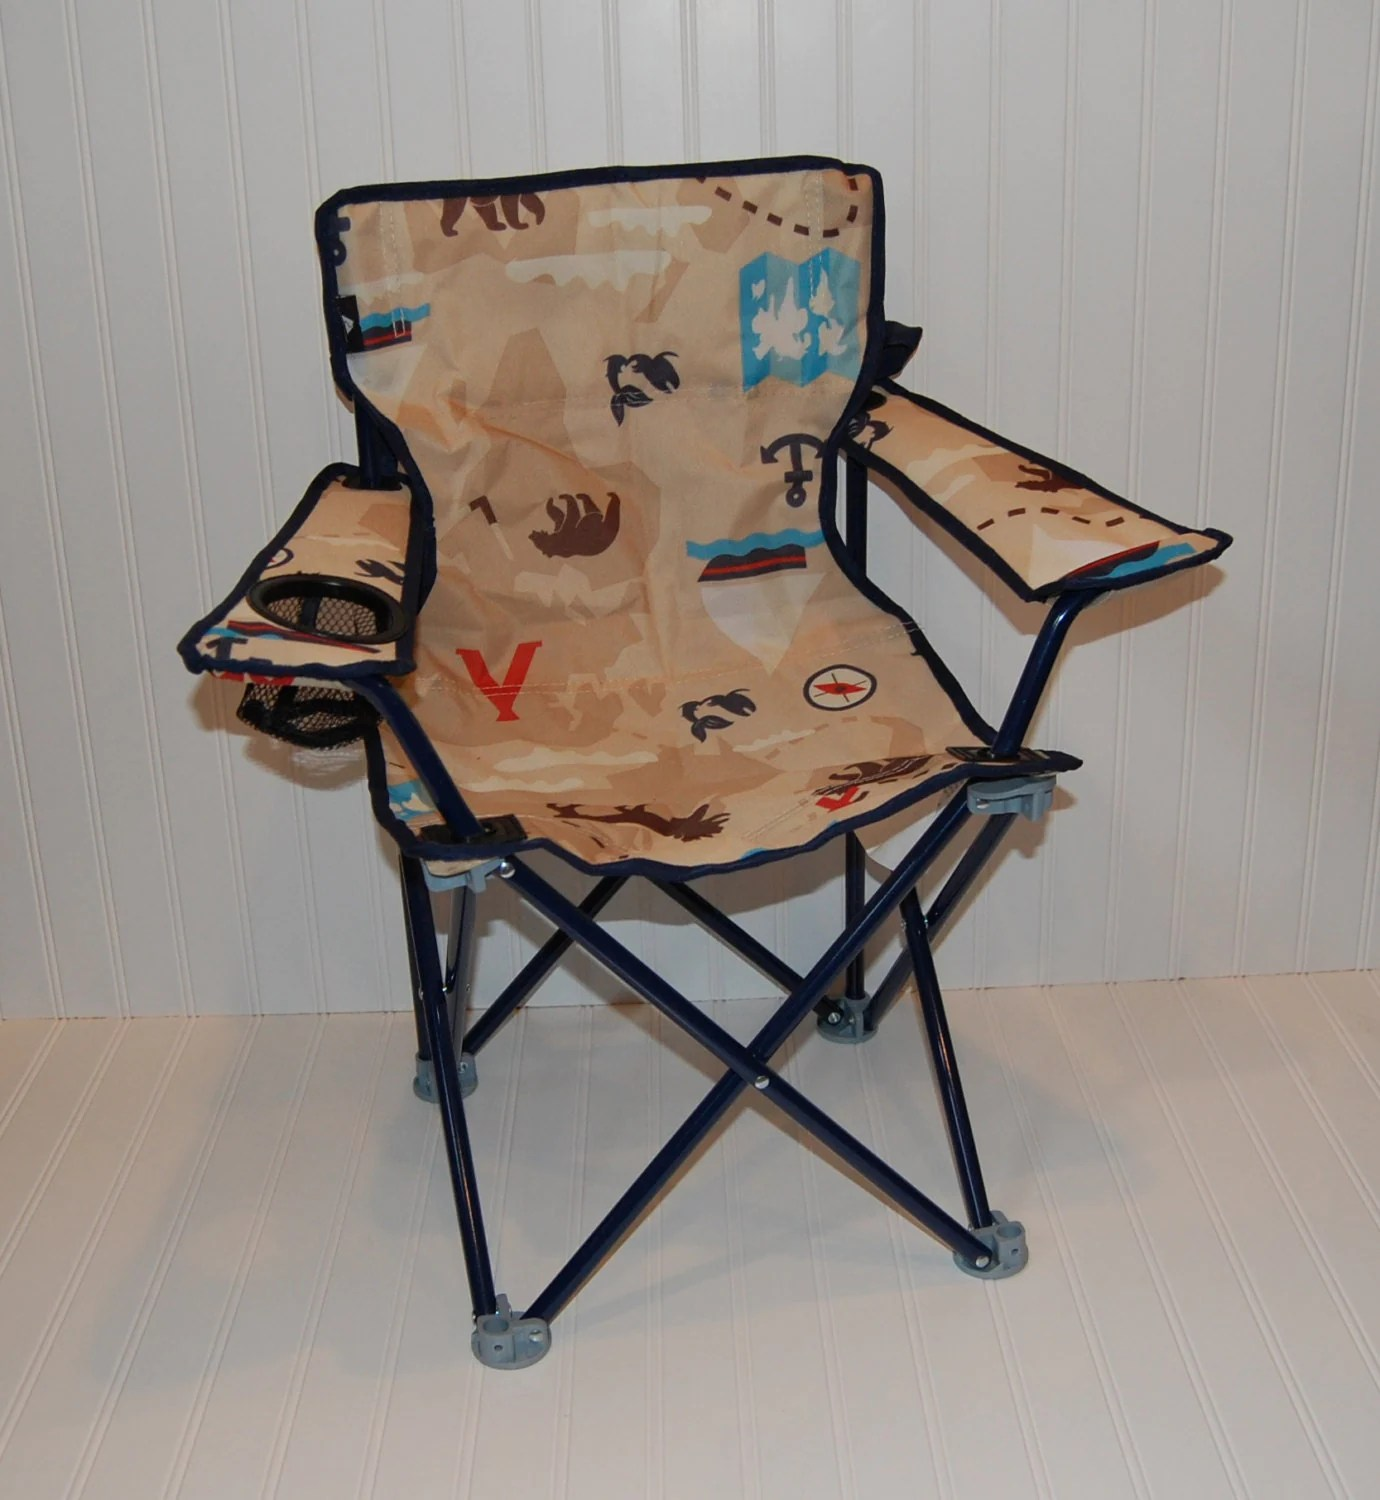 personalized little kid chair in steel reinforcement toddler boy folding camping adventure